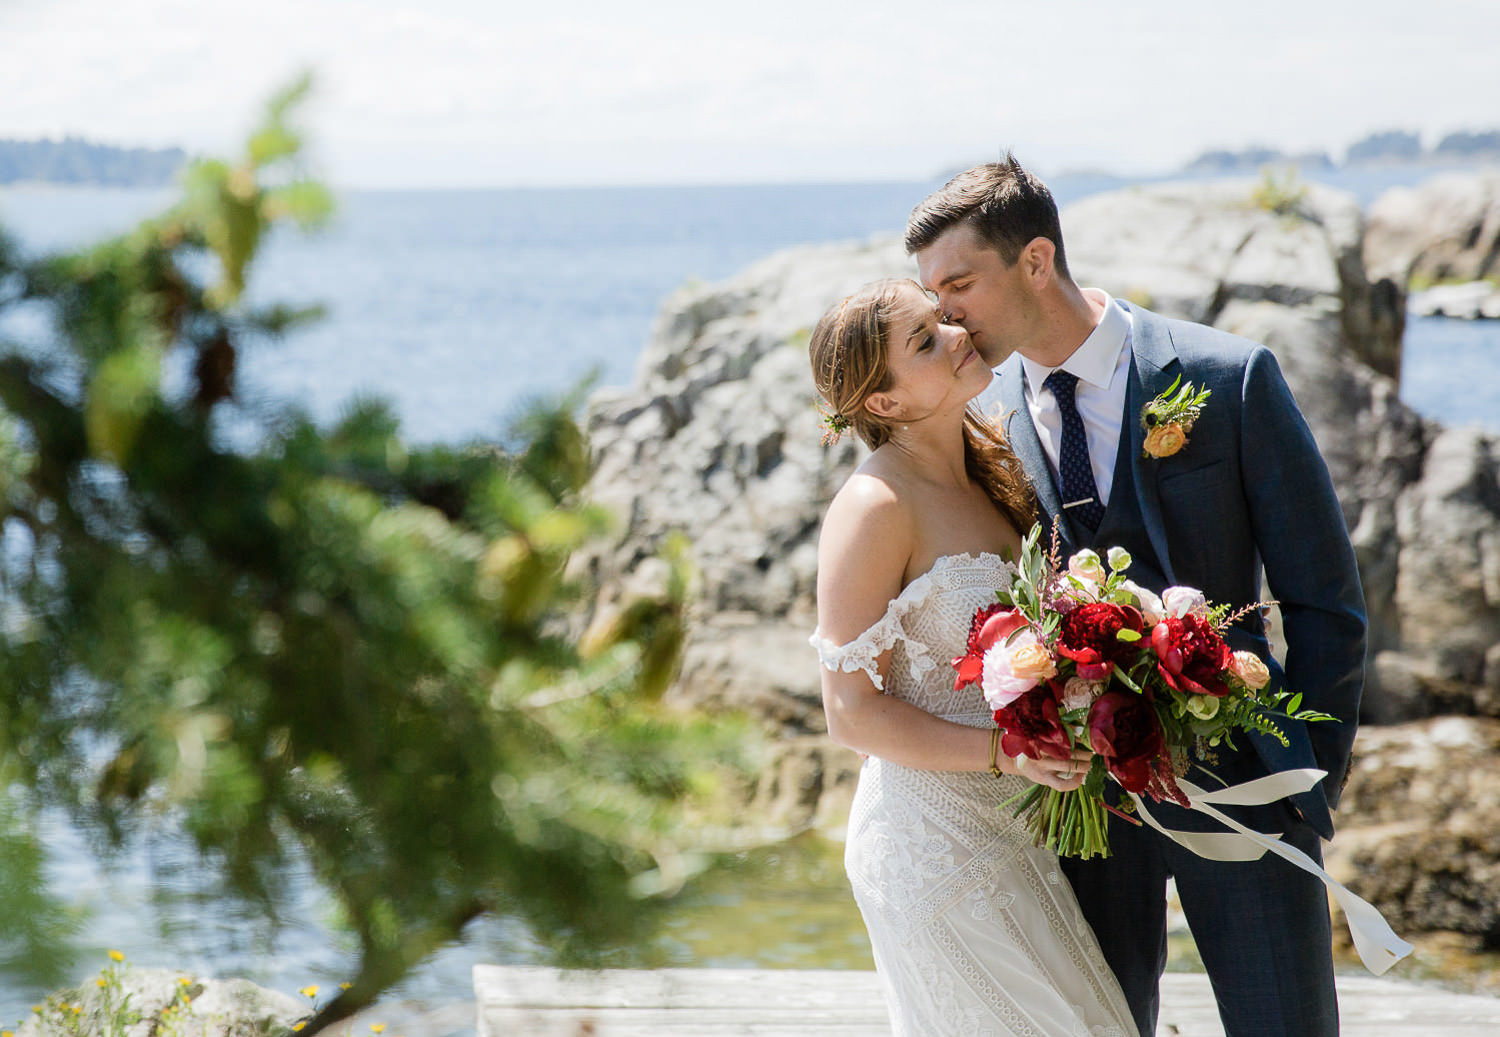 Seaside Boho wedding with a gorgeous Rue De Seine bride | Photo: Camilla Anchisi